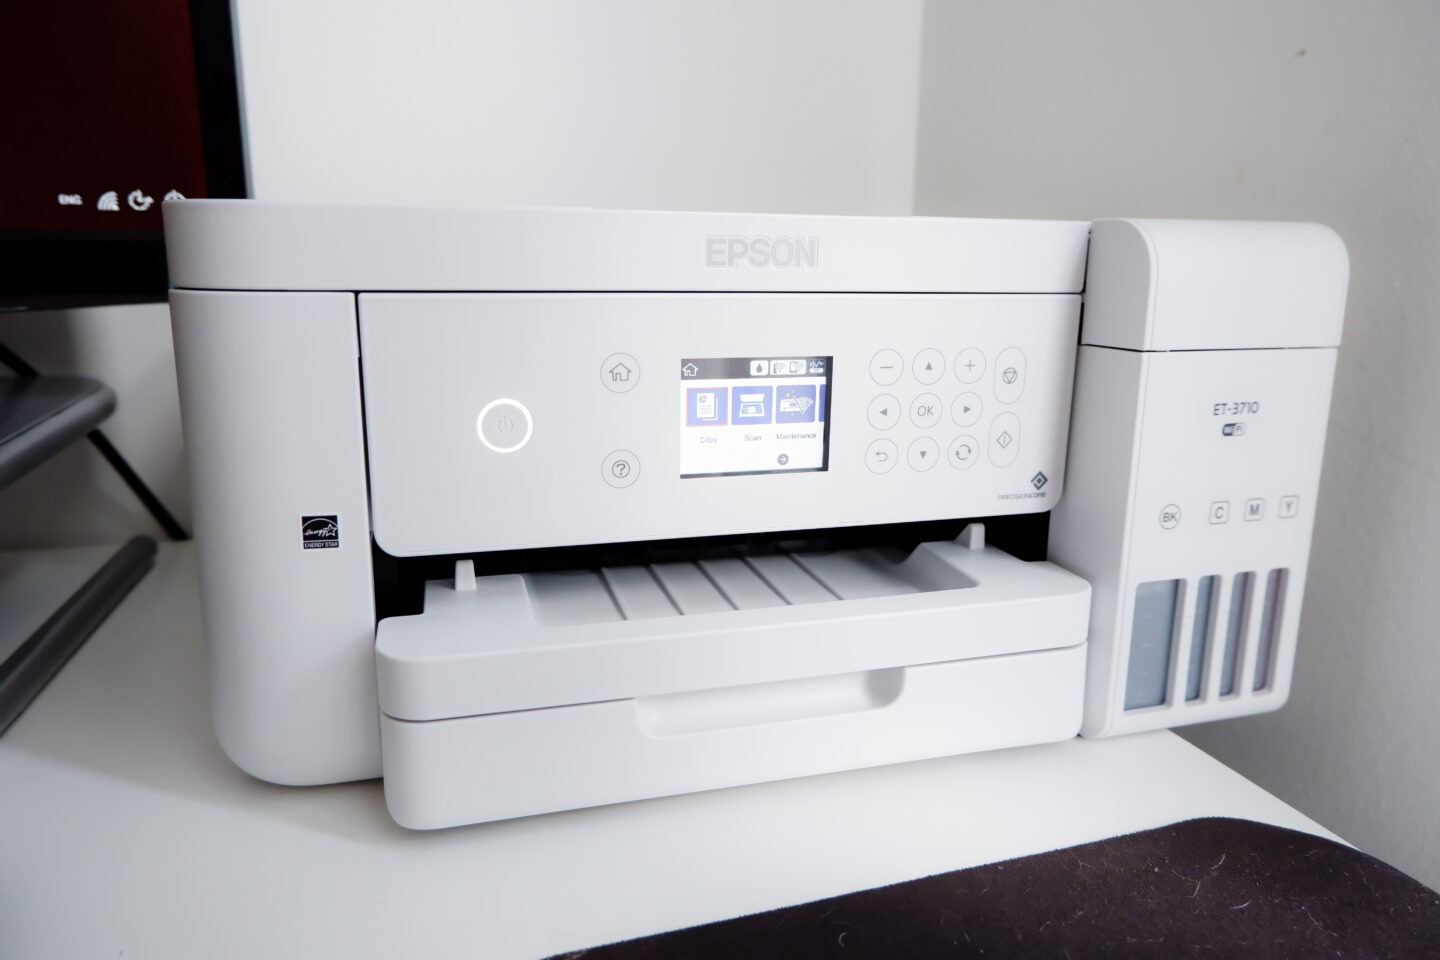 Epson EcoTank ET-3710 Review: The Best Printer You Will Buy